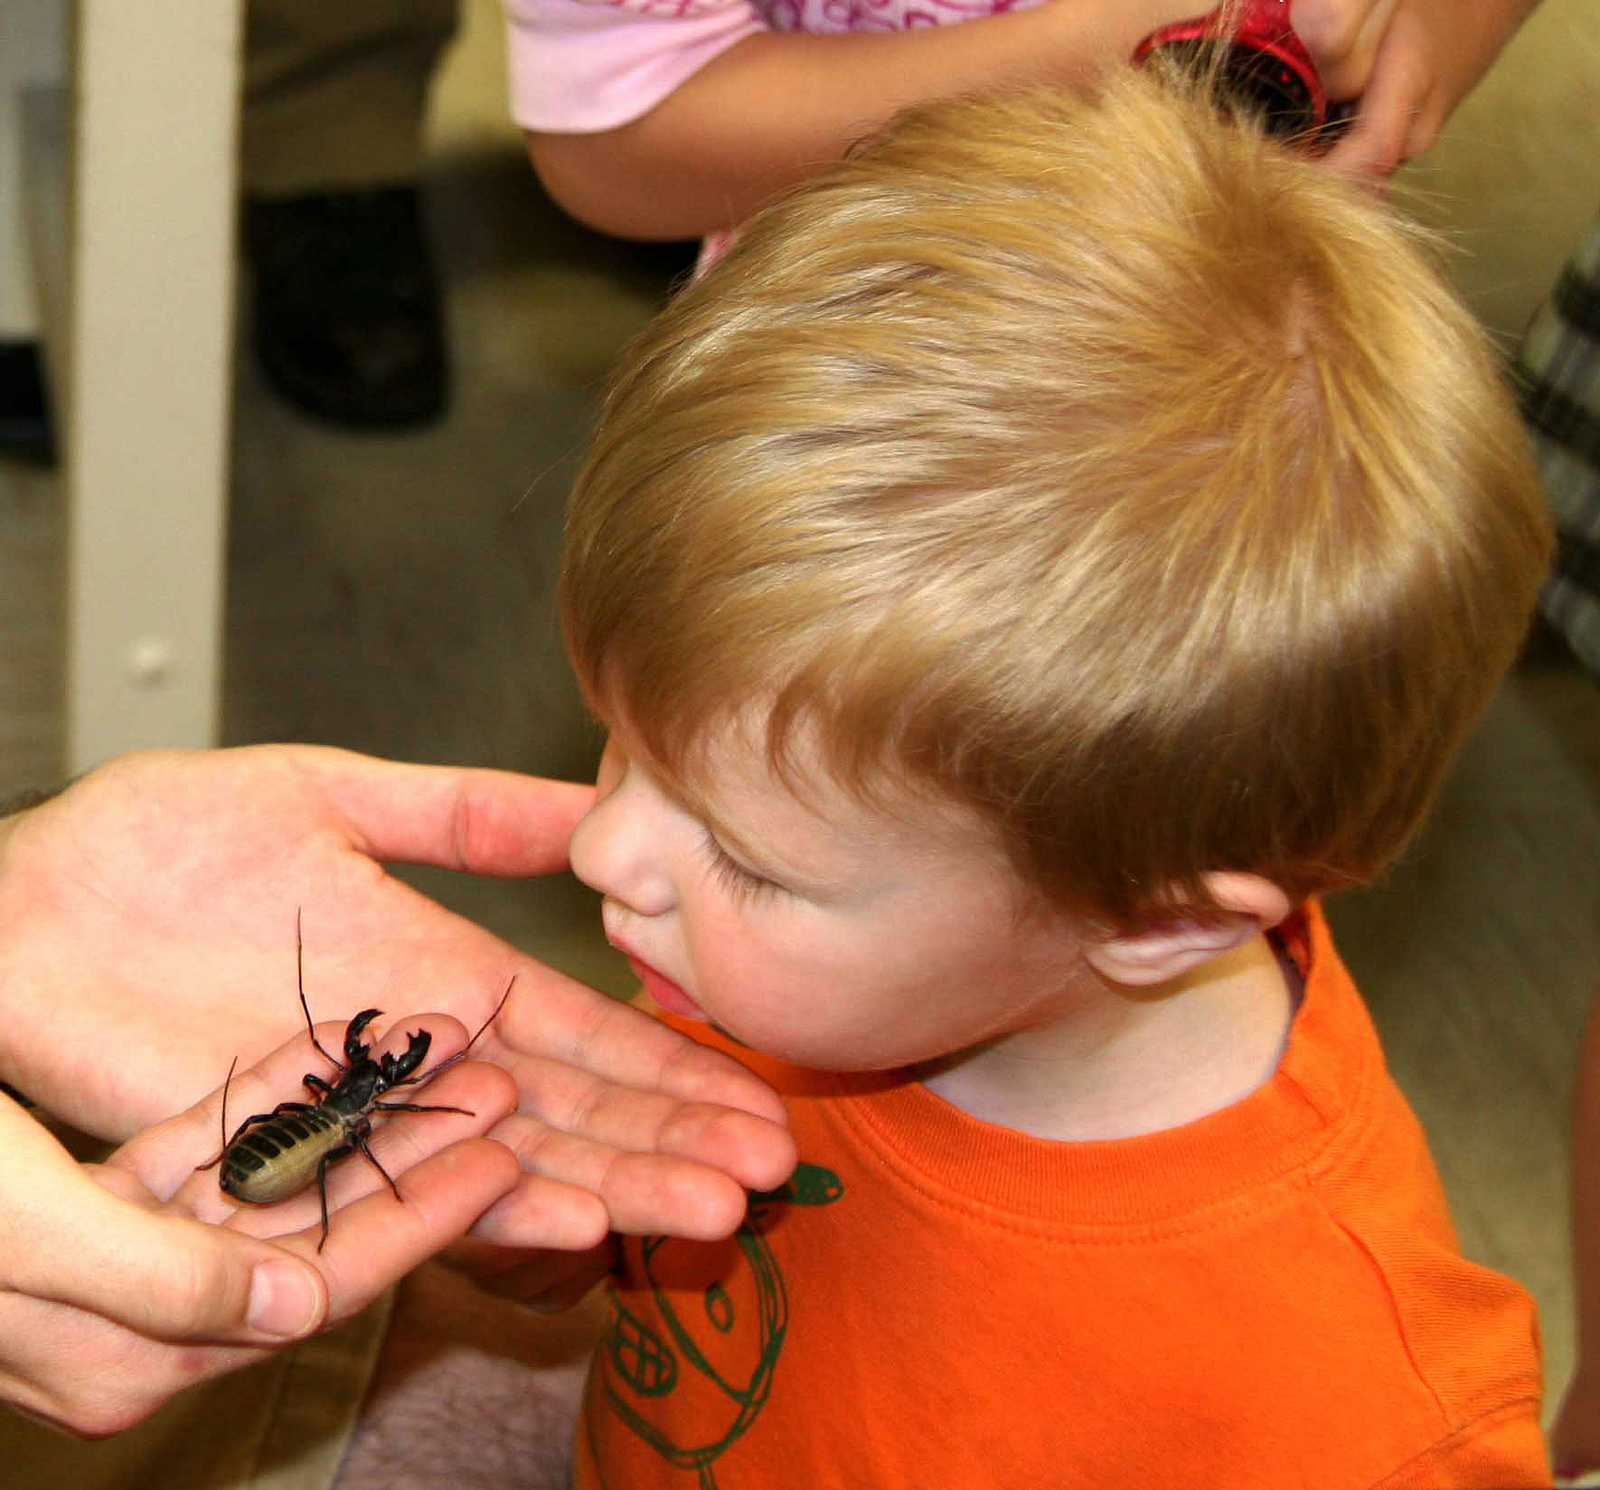 The University of Georgia Insect Zoo Open House will feature a photo booth, live bug exhibits, roach races, beetle tractor pulls and more. Daring visitors can try tasty snacks made from insects.